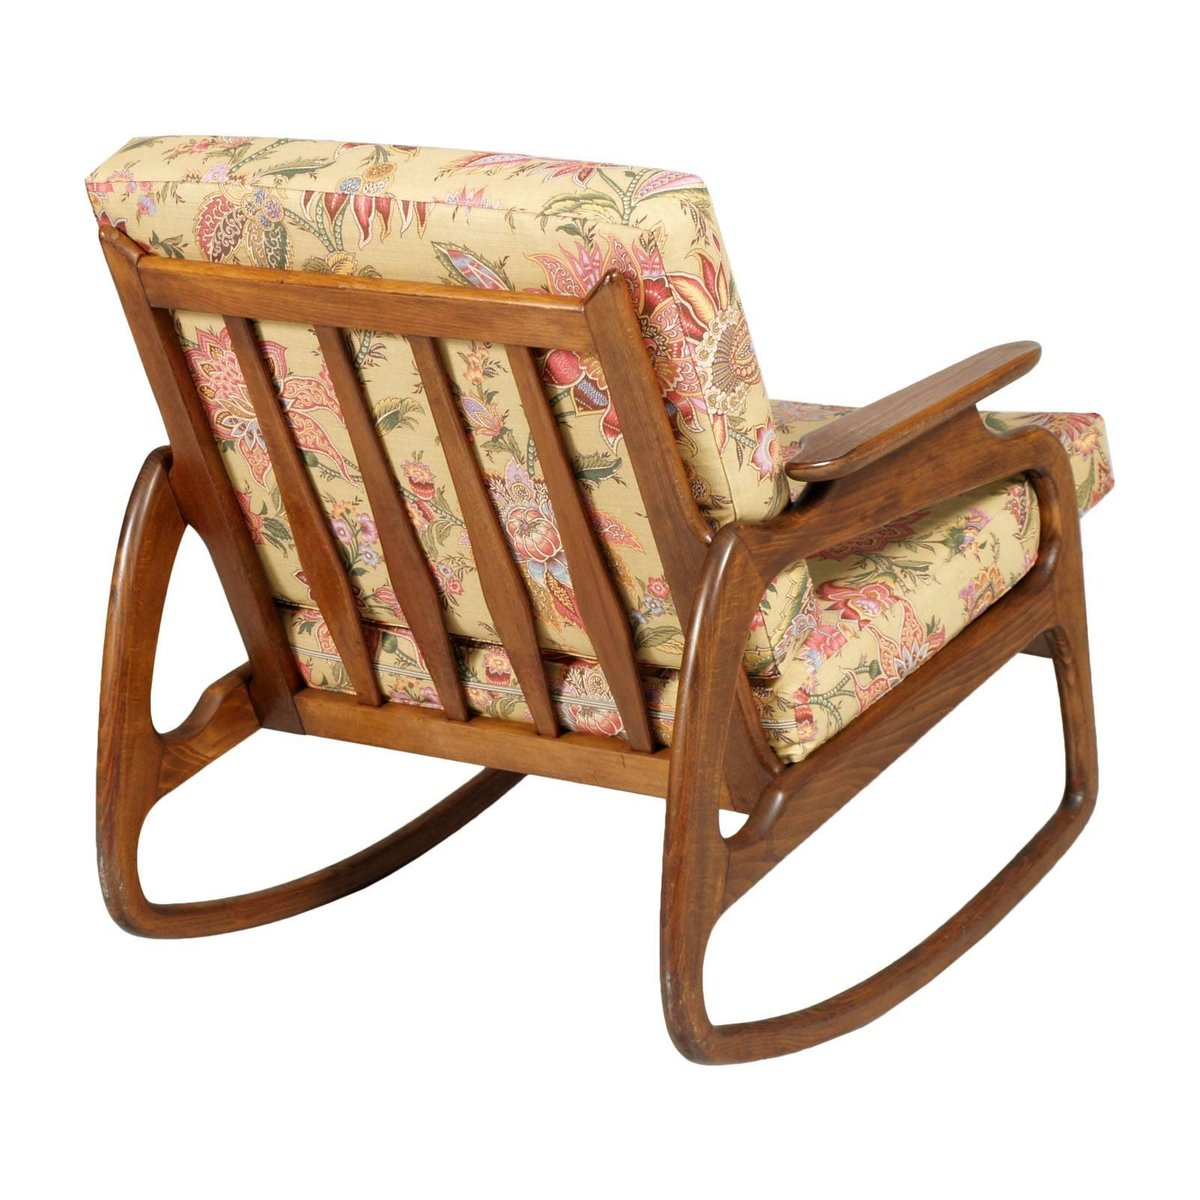 adrian pearsall rocking chair webbed lawn chairs walnut by 1950s for sale at pamono